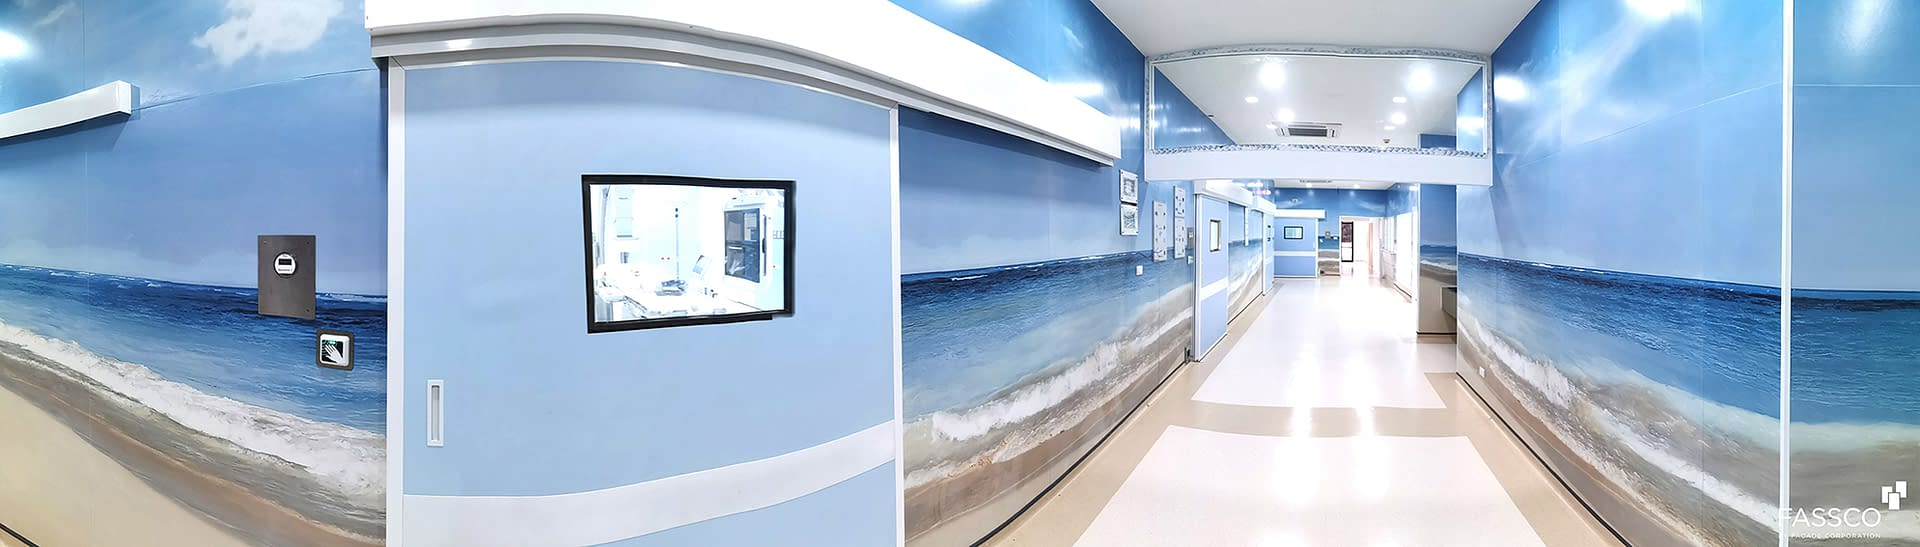 Fibrecement Wall Covering Hospital Decoration